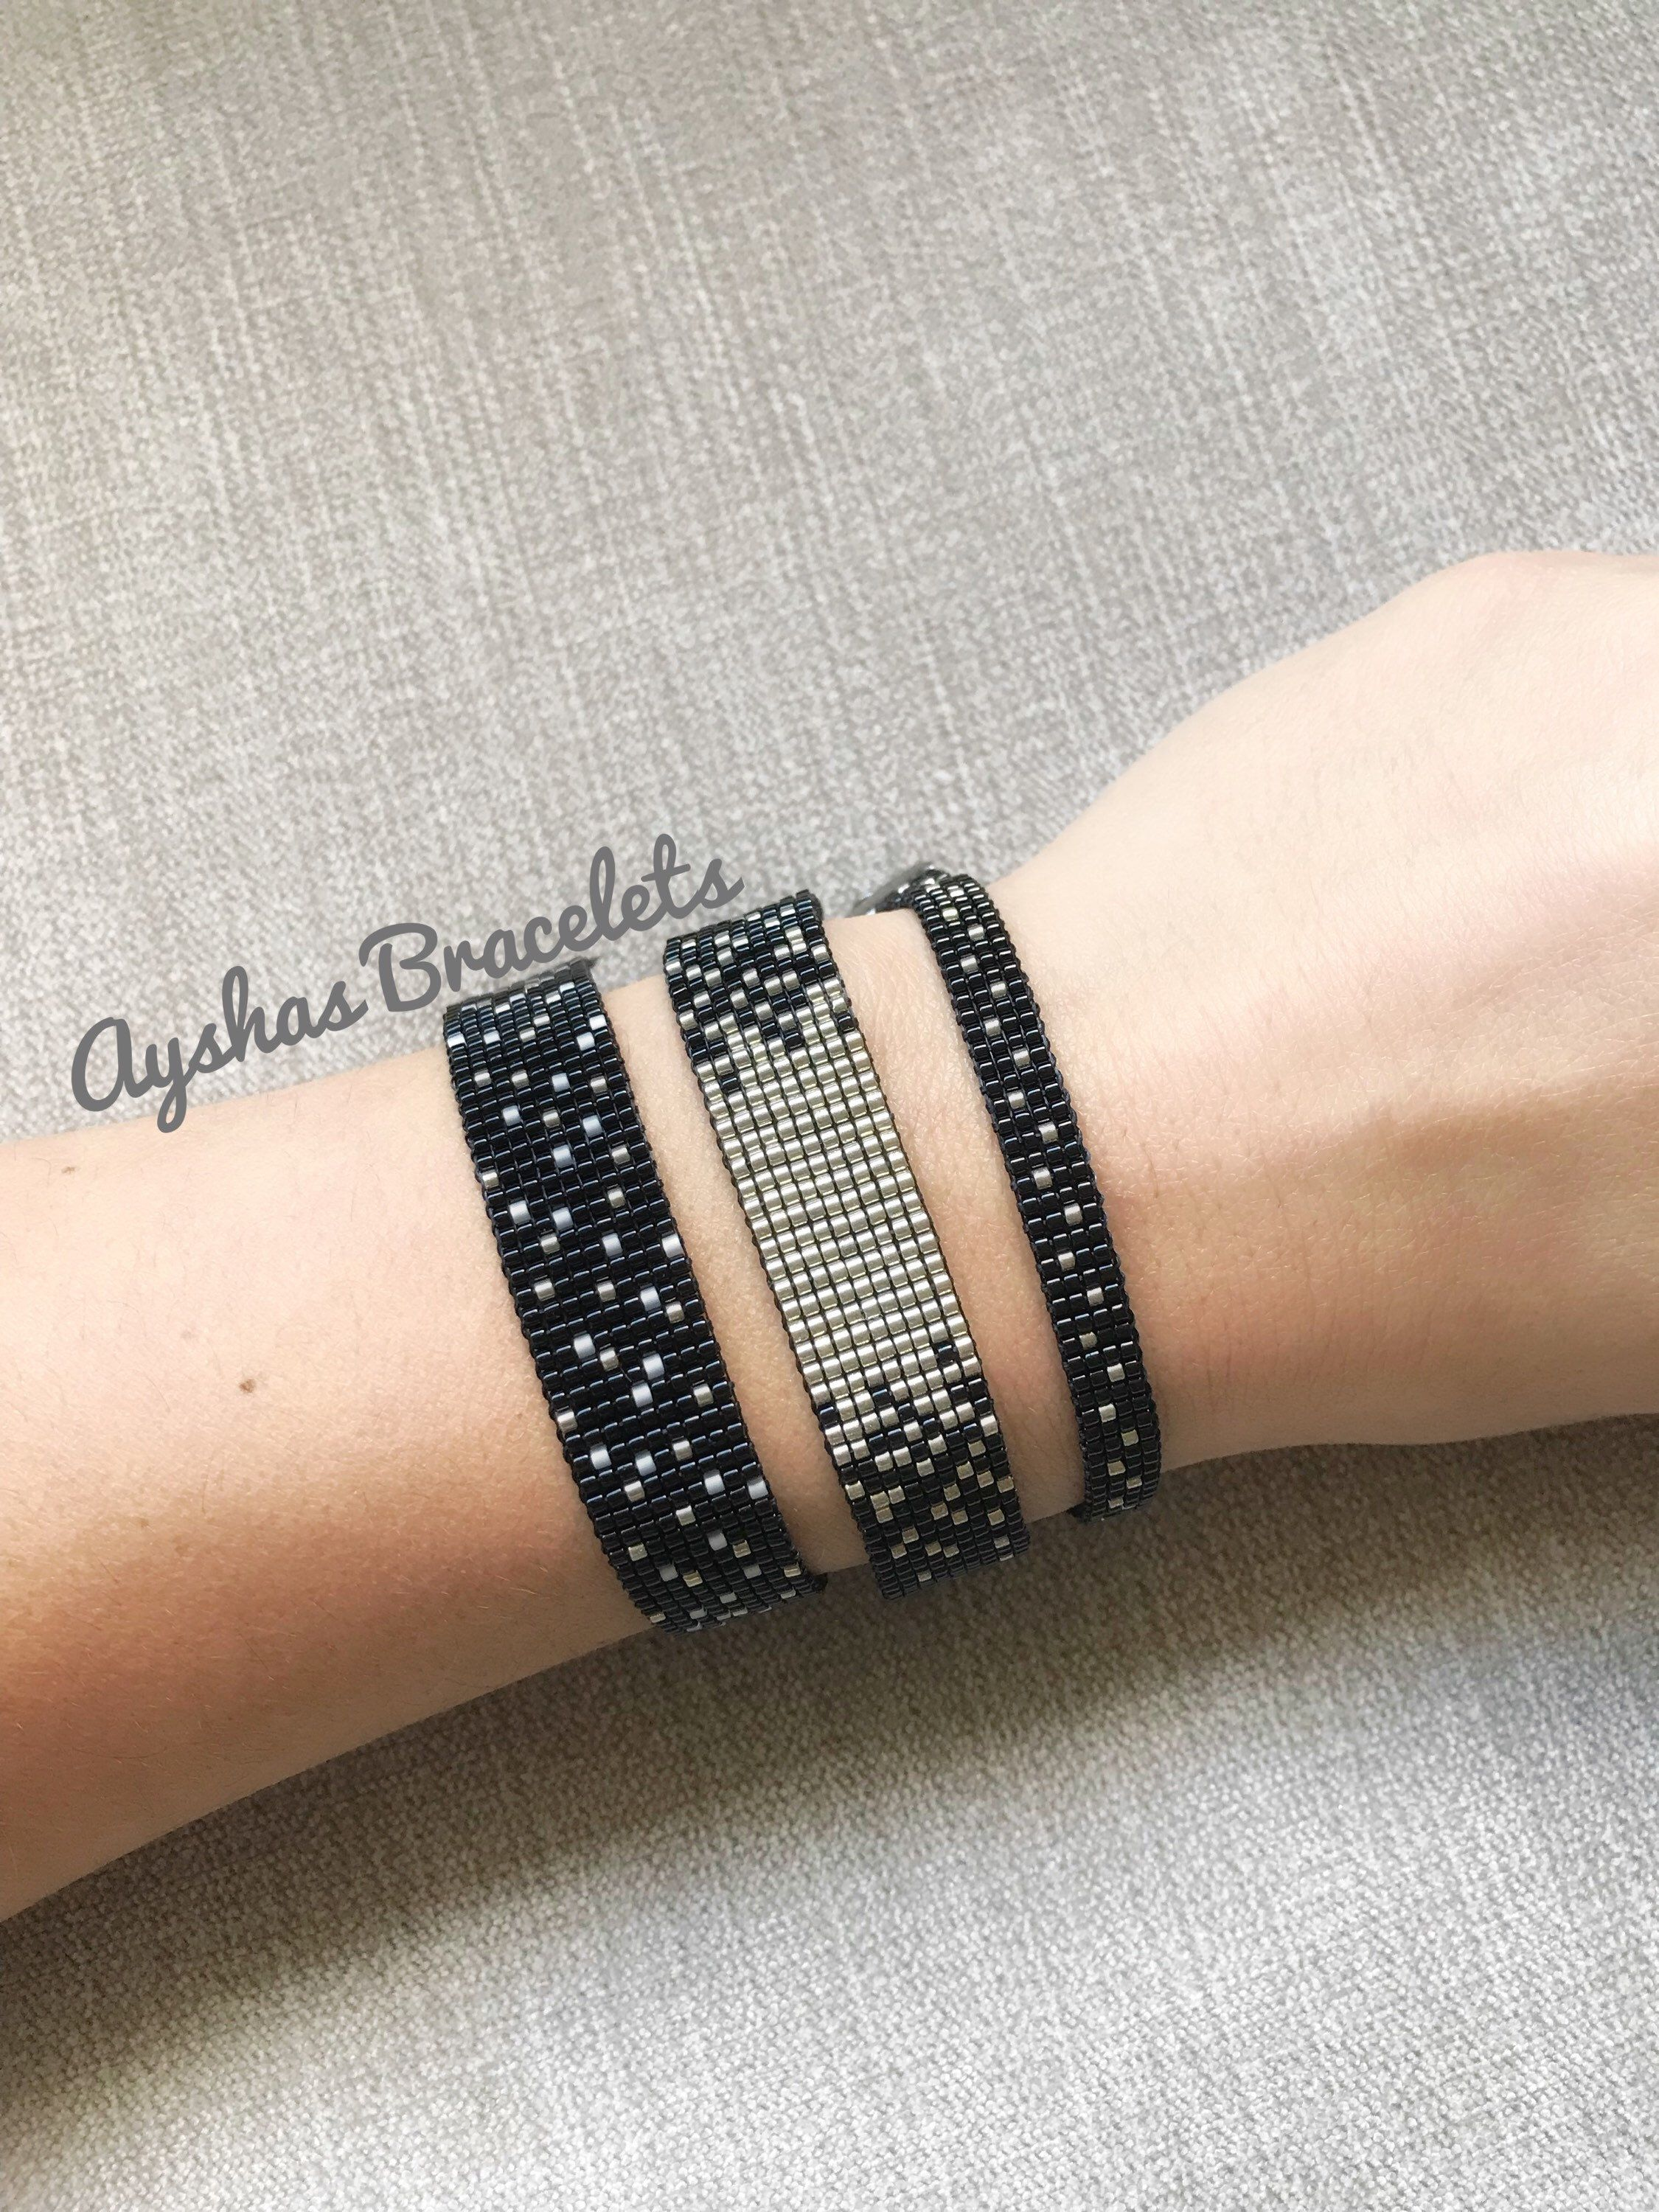 ~~ONE PACKAGE ANTIQUE SILVER BEAD BRACELET KIT WITH BLACK CORD ~ MAKES 10 1